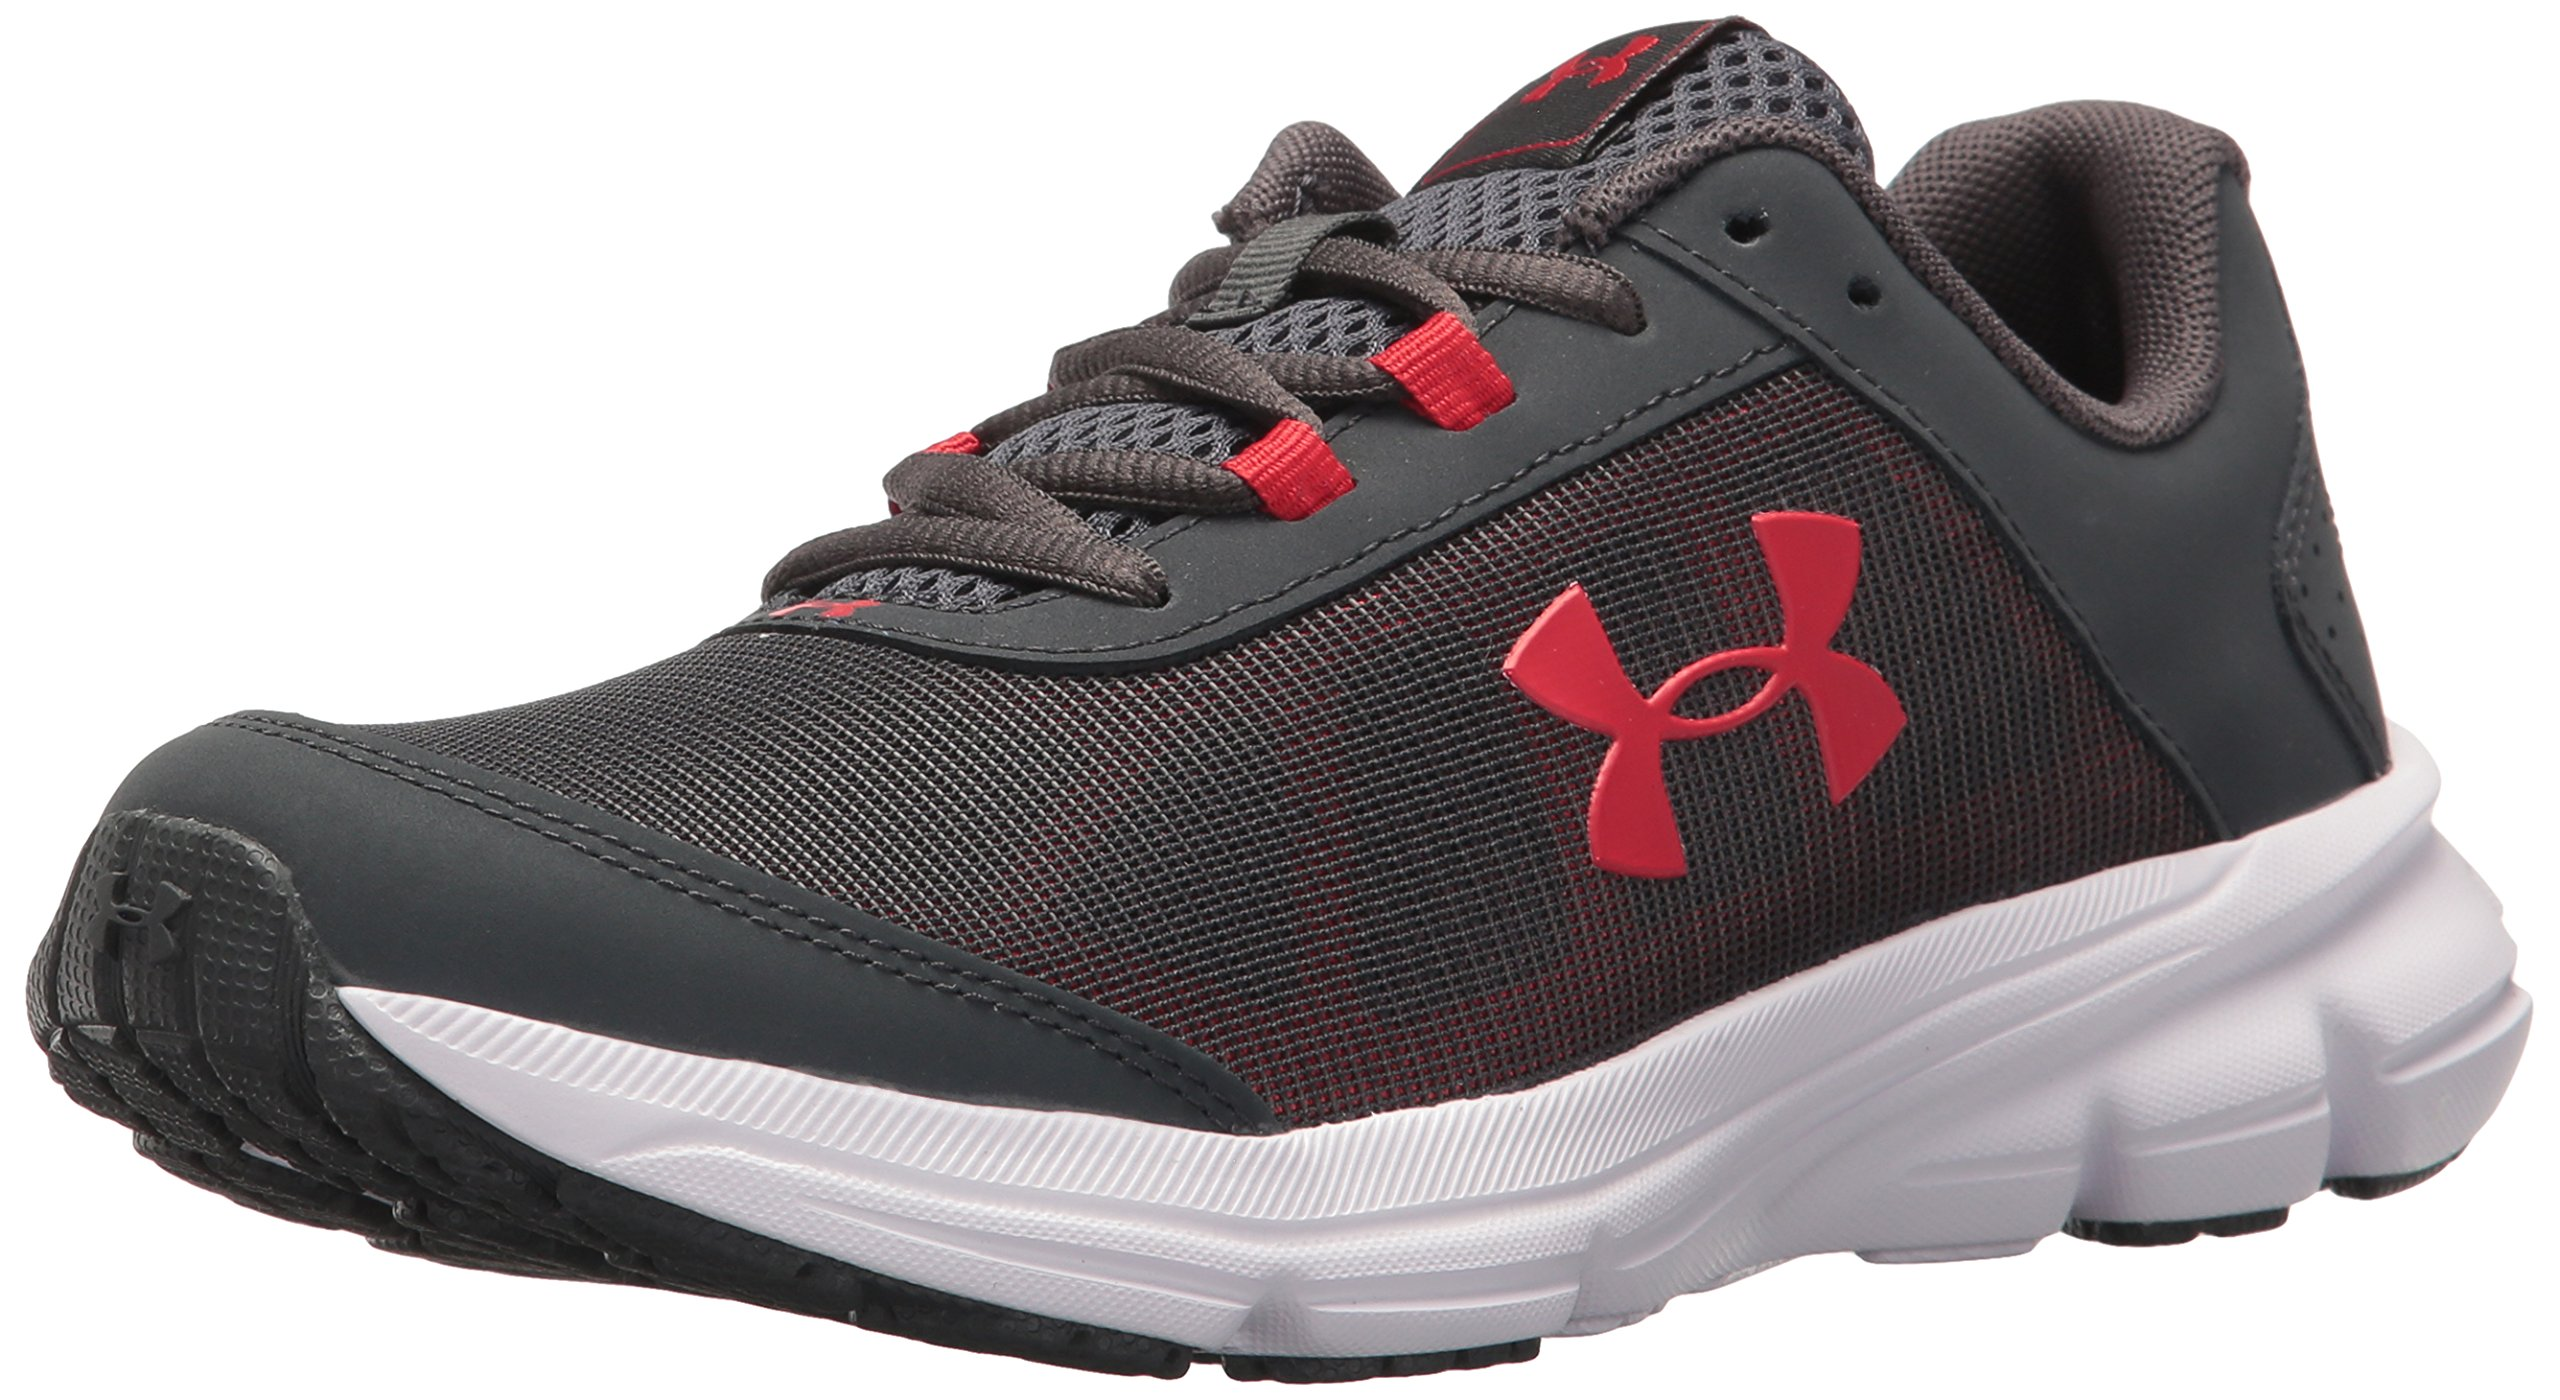 Under Armour Kids' Grade School Rave 2 Sneaker,Stealth Gray (100)/White,6.5 M US by Under Armour